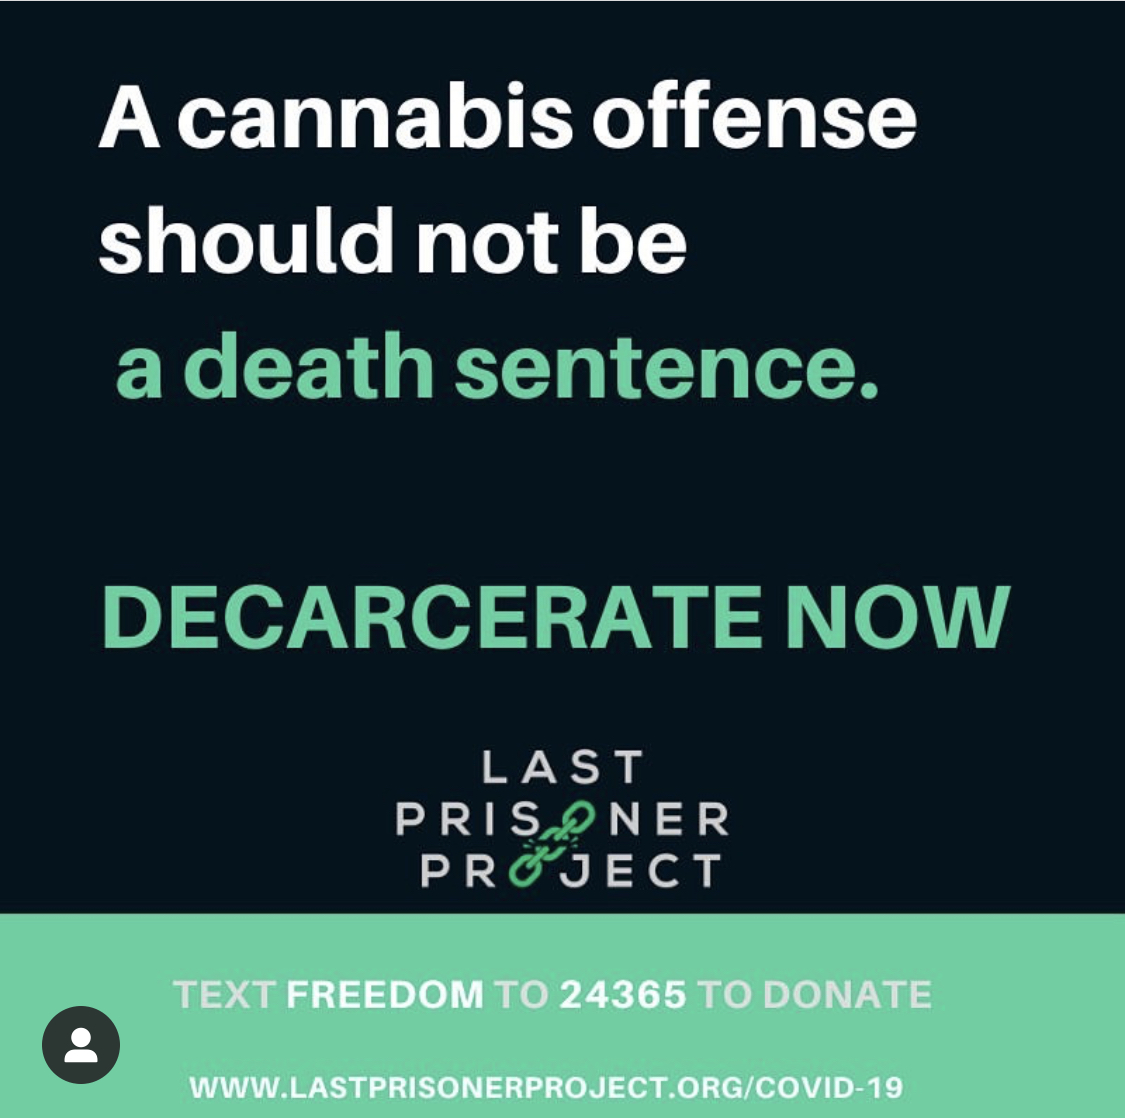 A cannabis offense should not be a death sentence. DECARCERATE NOW - LastPrisonerProject.org - Text FREEDOM to 24365 to donate.